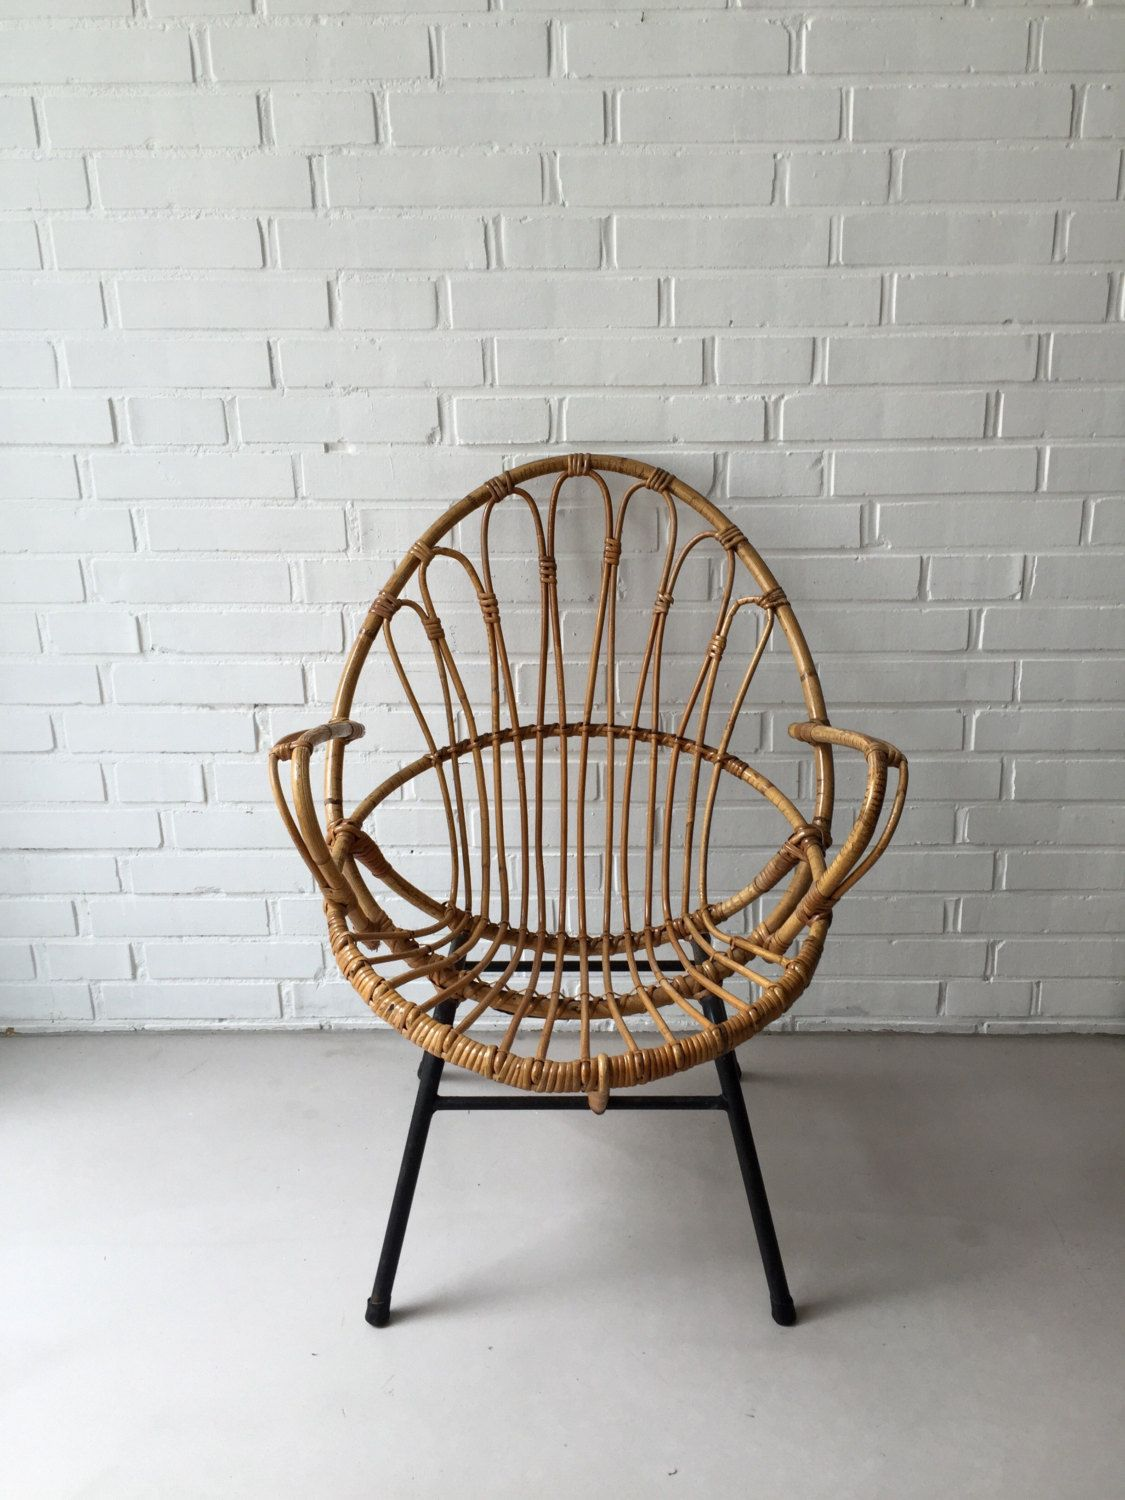 vintage rattan chair wicker chair bamboo chairs vintage loungstuhl wicker chairs retro. Black Bedroom Furniture Sets. Home Design Ideas